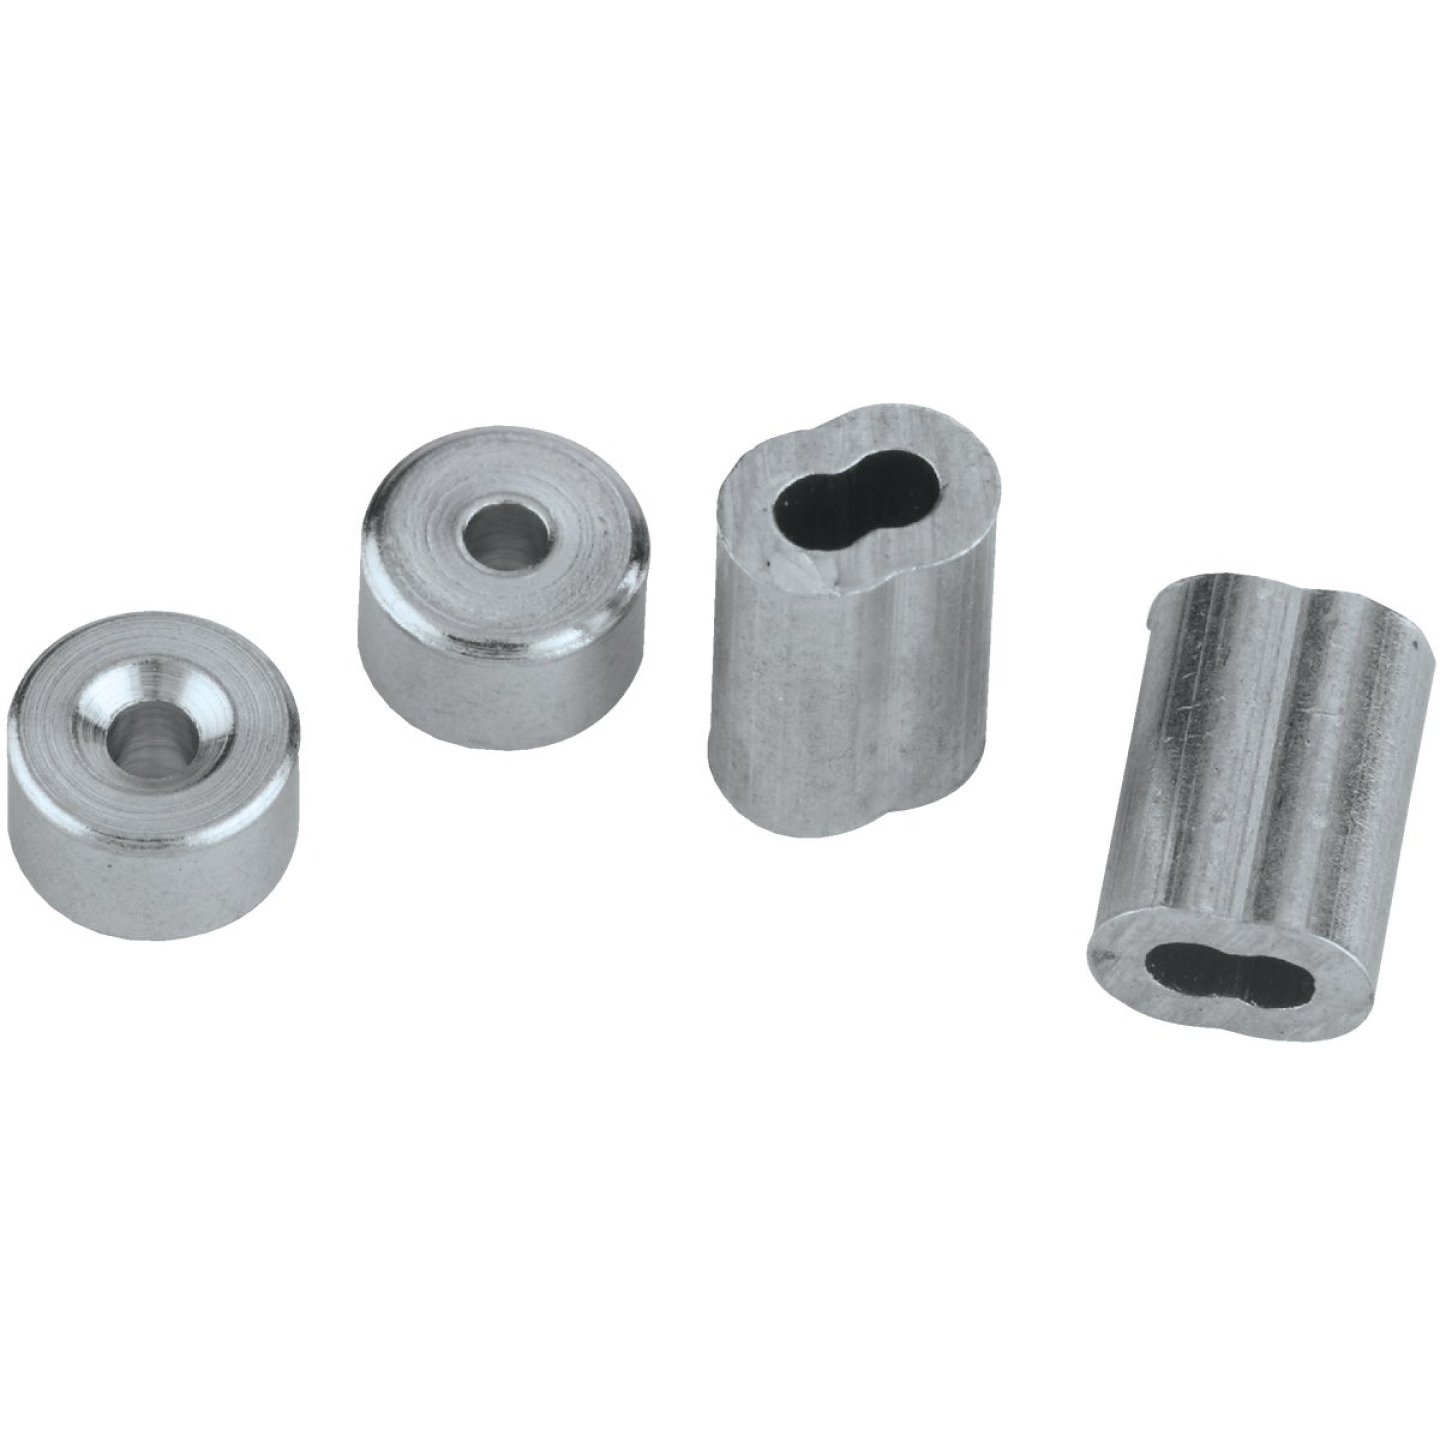 National 1/16 In. Aluminum Garage Door Ferrule & Stop Kit Image 3